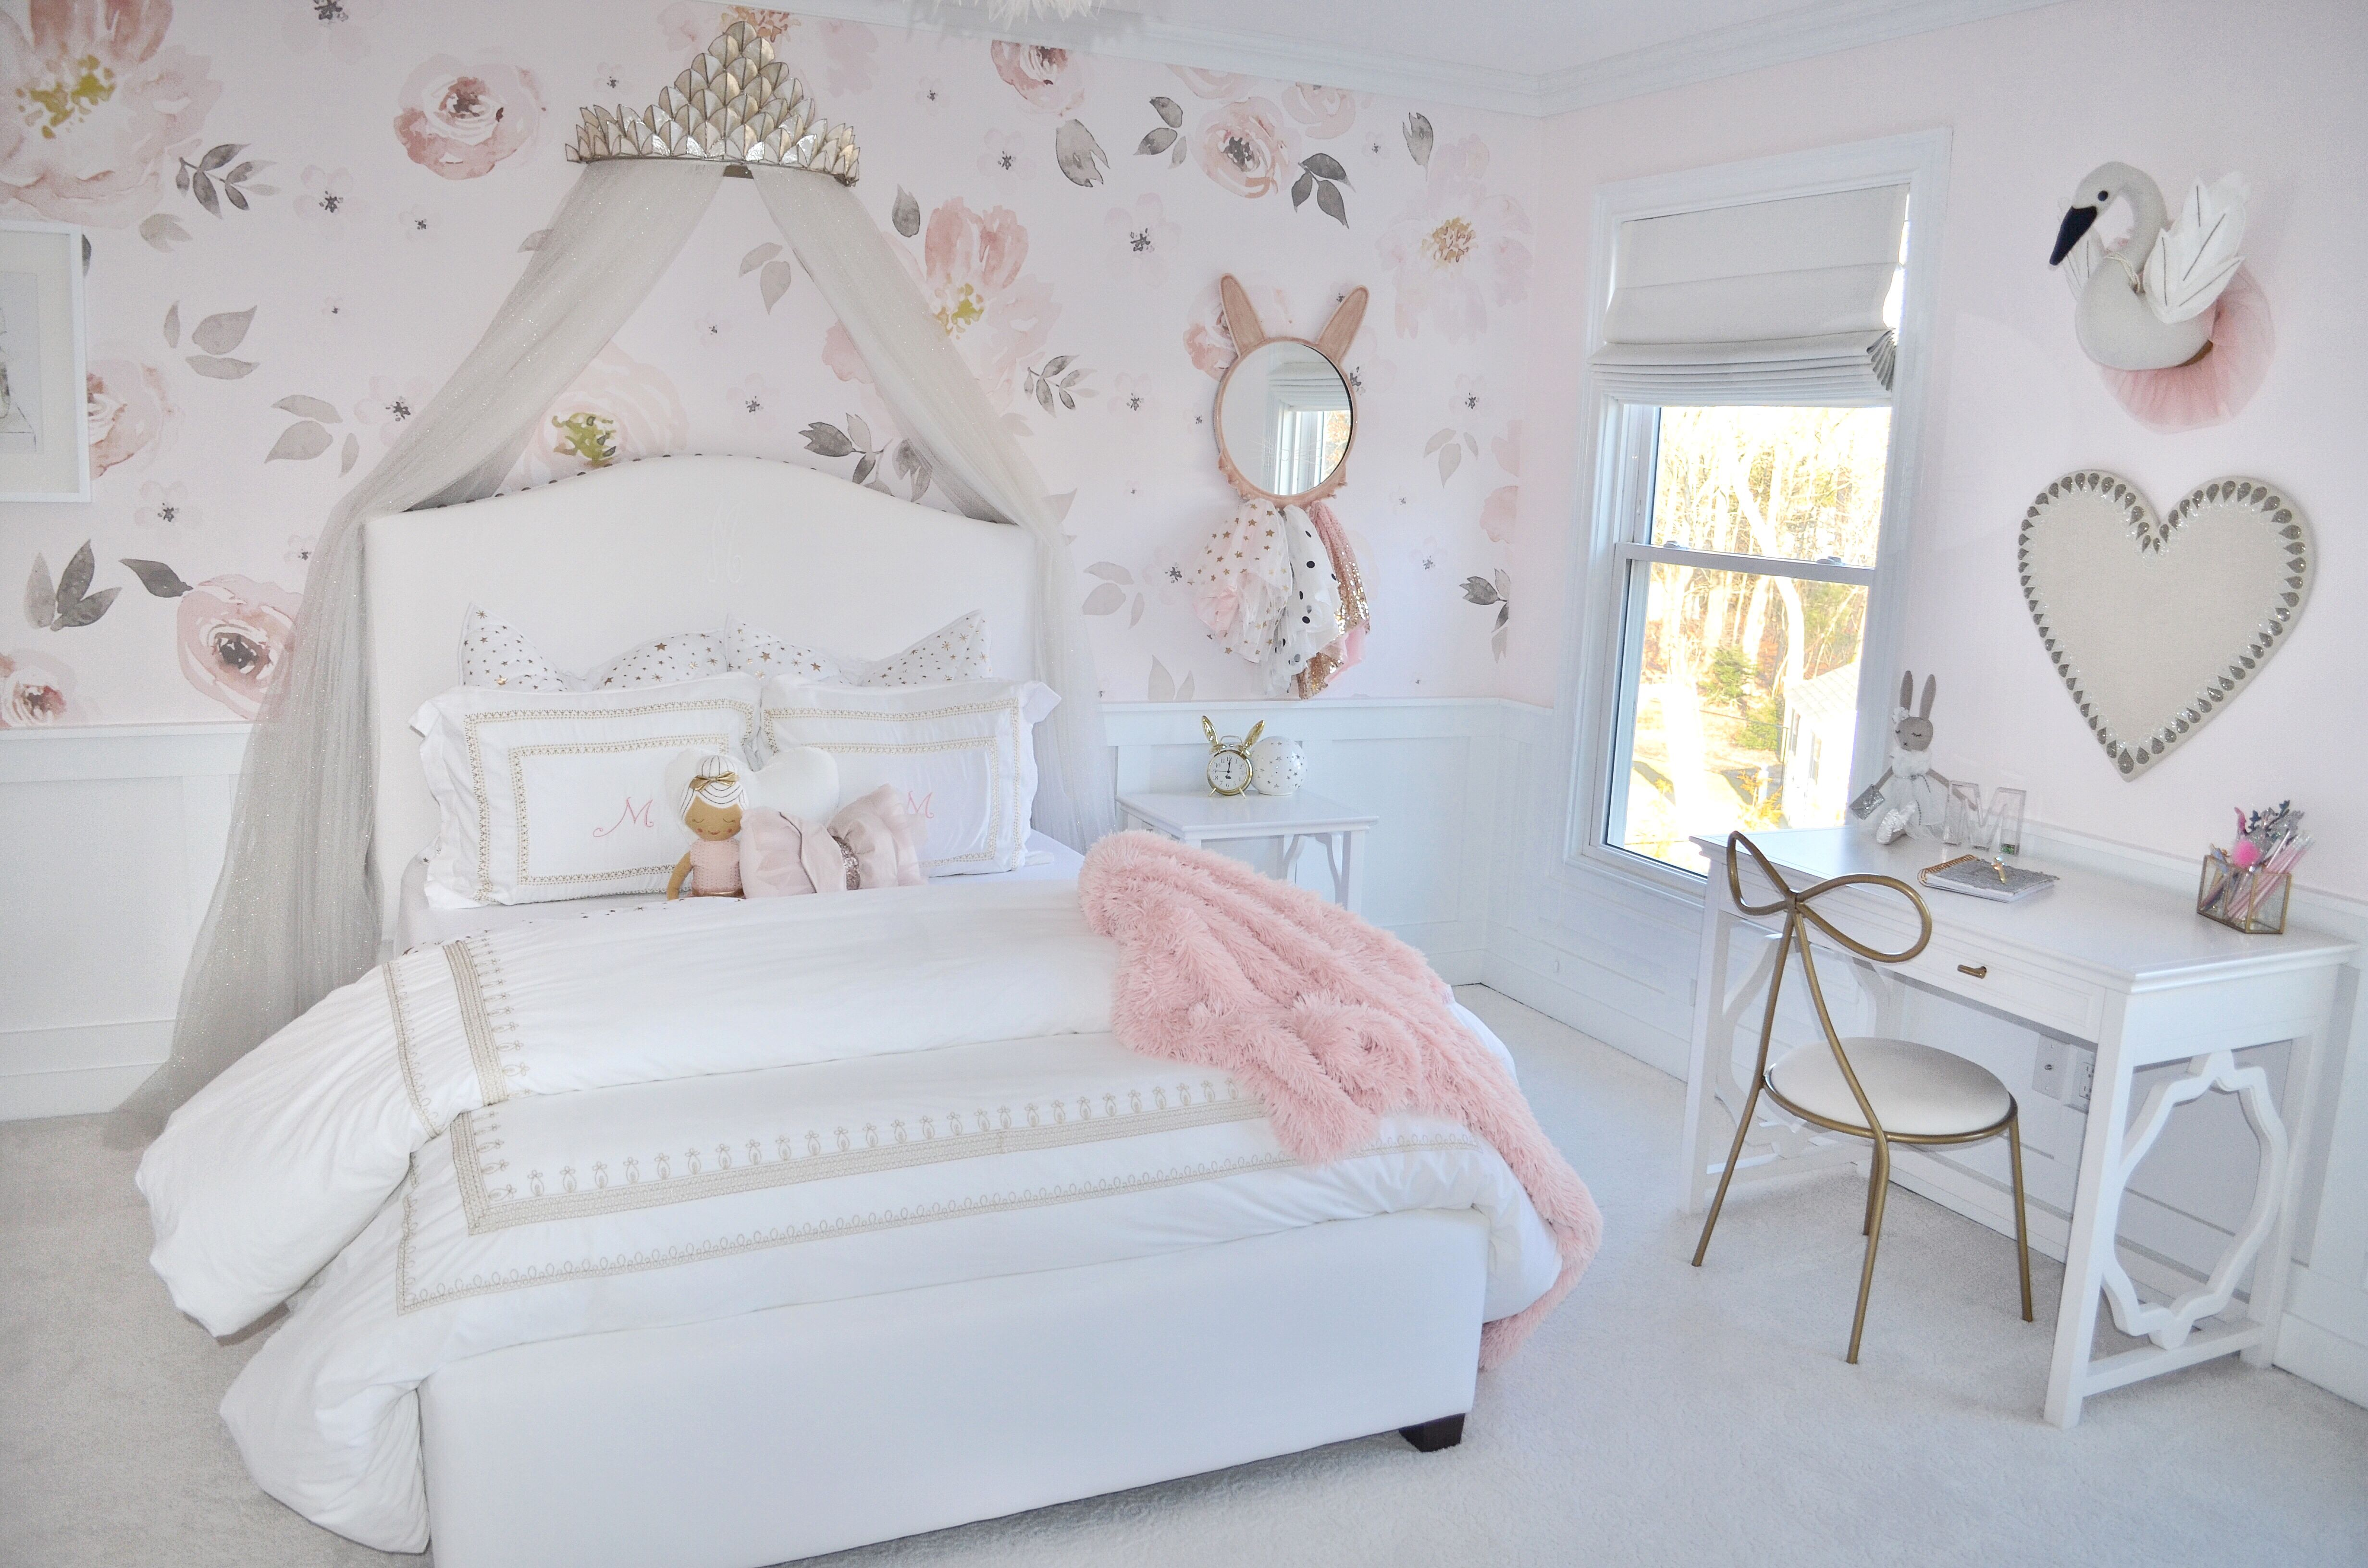 Girls Bedroom Pottery Barn Kids Bed White And Blush Vintage